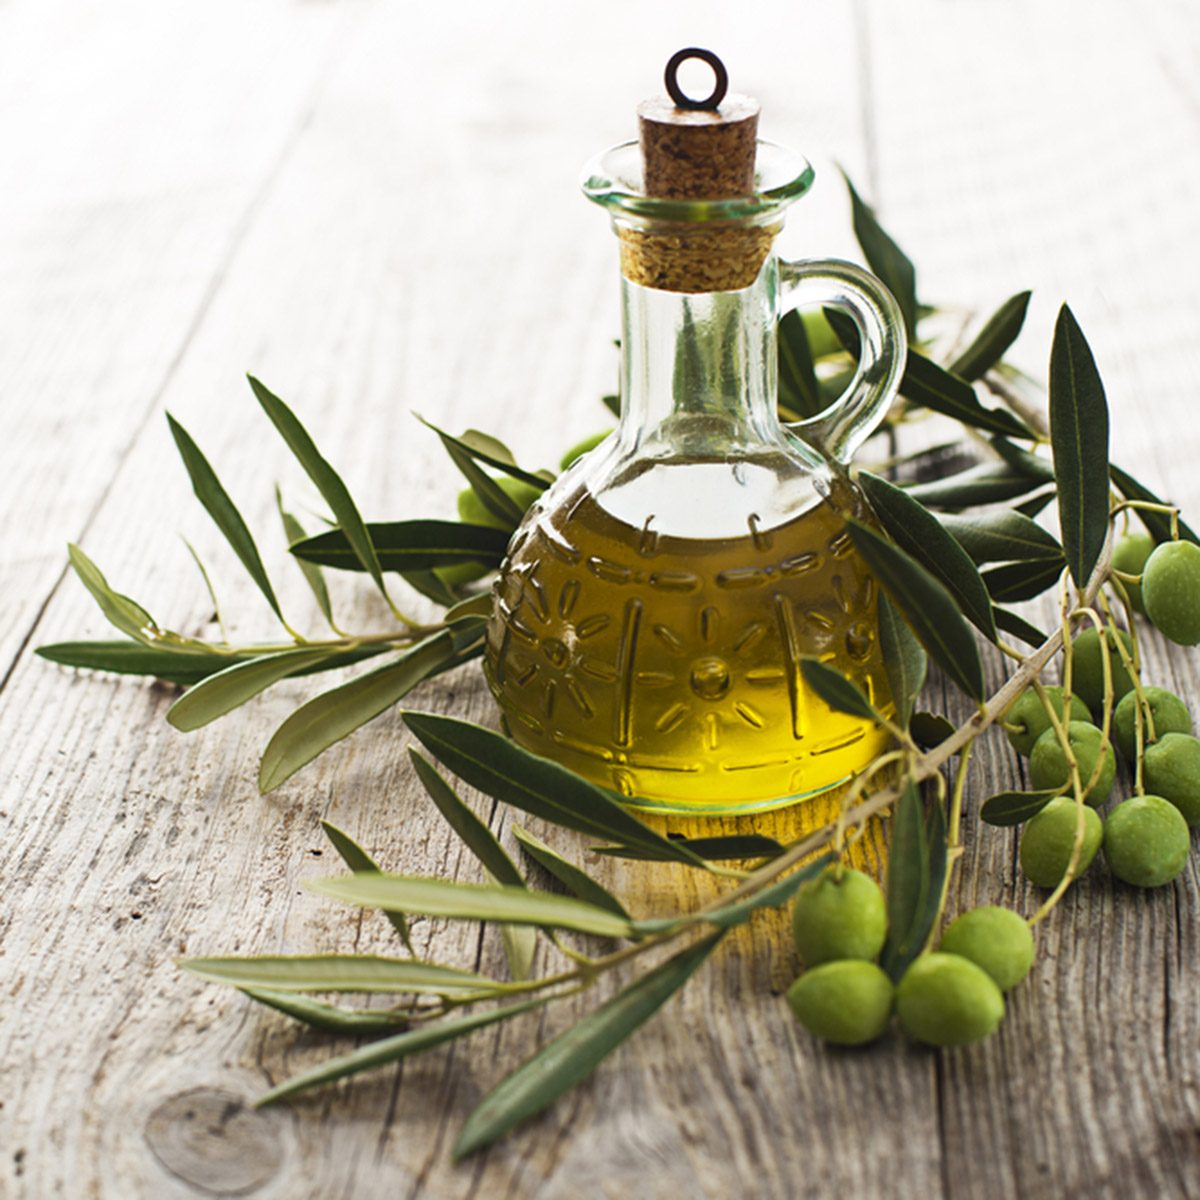 Olive oil and olive branch on the wooden table; Shutterstock ID 159233054